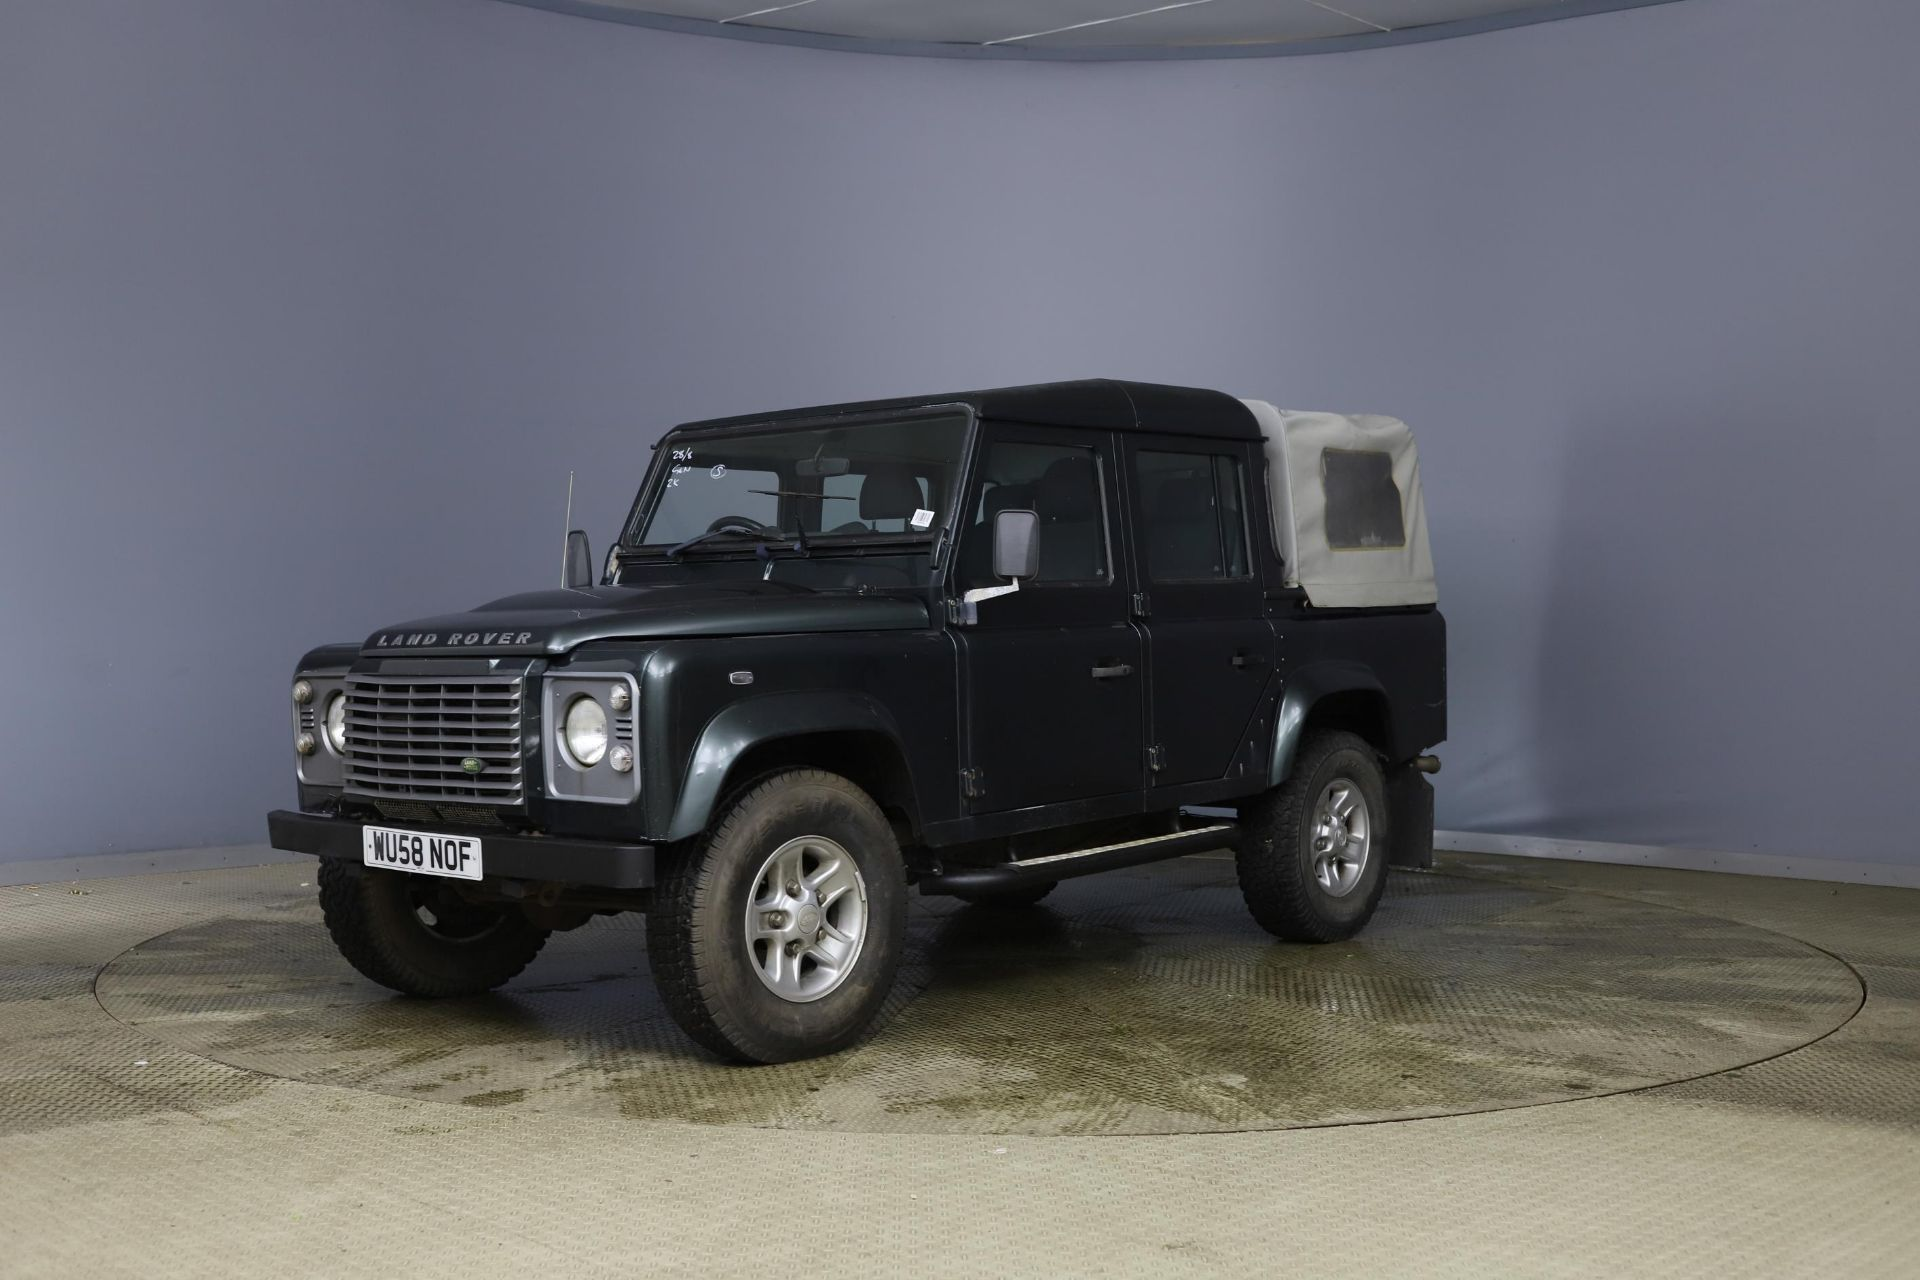 2008/58 REG LAND ROVER DEFENDER 110 XS DC LWB 2.4 DIESEL GREEN LIGHT 4X4, SHOWING 2 FORMER KEEPERS - Image 3 of 12